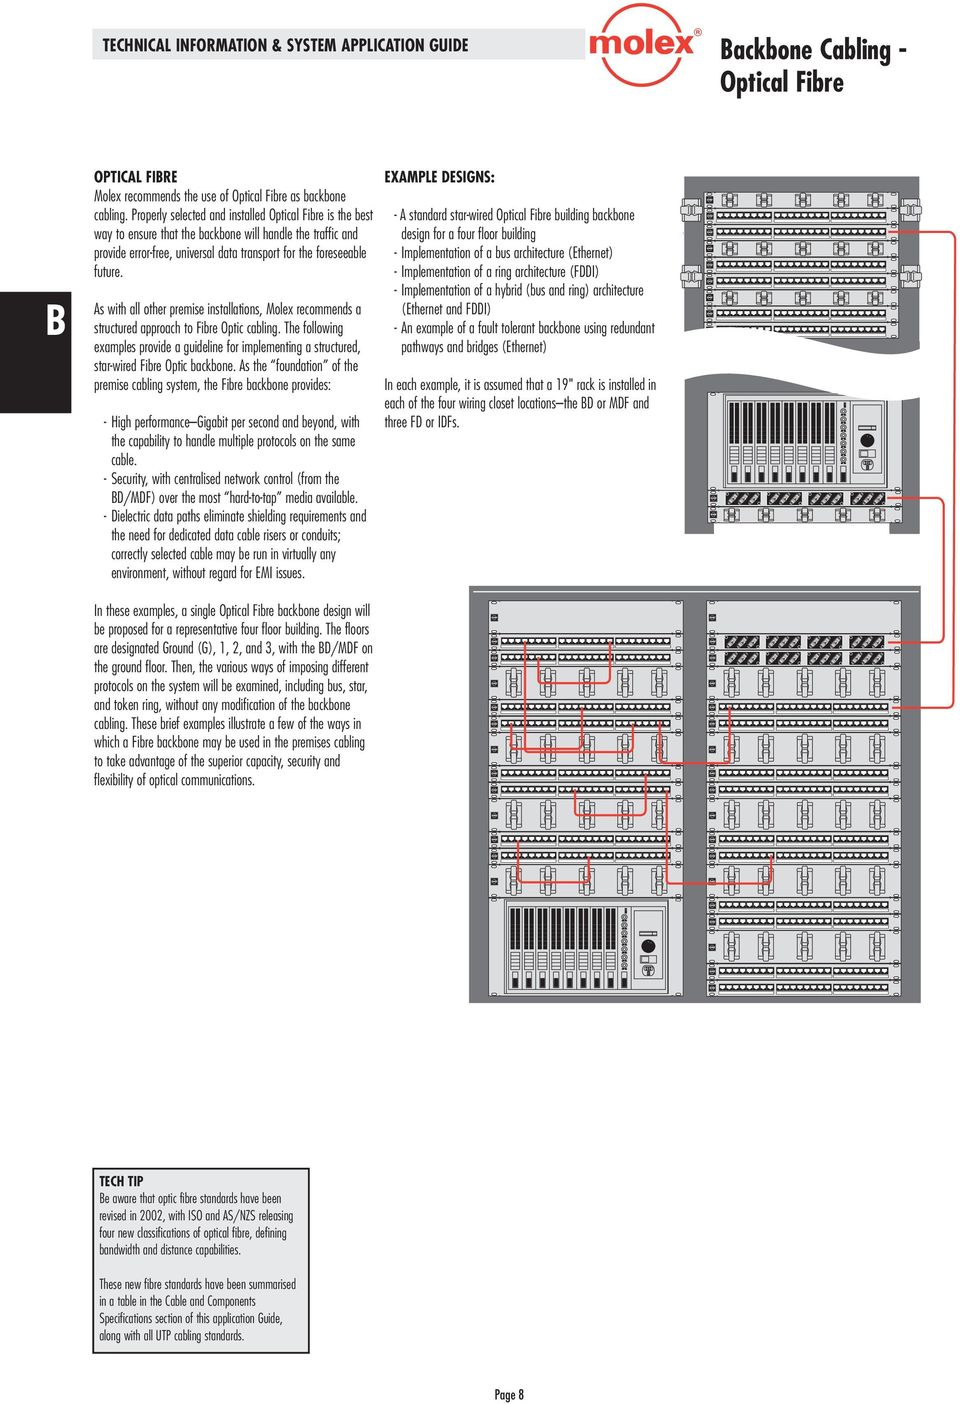 Technical Information And System Application Guide Pdf Network Wiring Closet Diagram As With All Other Premise Installations Molex Recommends A Structured Approach To Fibre Optic Cabling